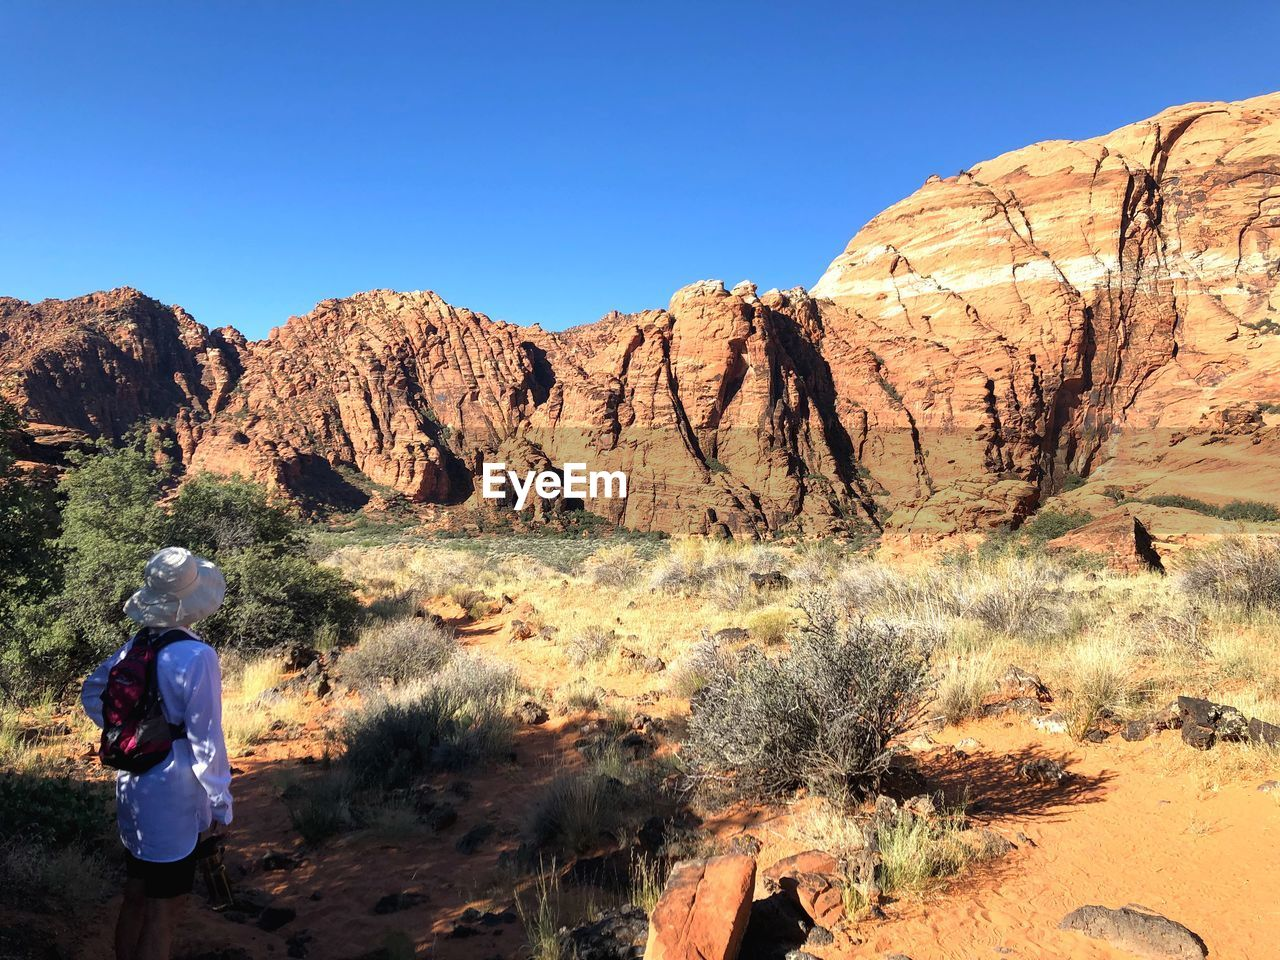 sky, rock, beauty in nature, mountain, clear sky, nature, rock - object, rear view, solid, real people, scenics - nature, non-urban scene, rock formation, environment, tranquility, day, plant, blue, people, sunlight, mountain range, outdoors, formation